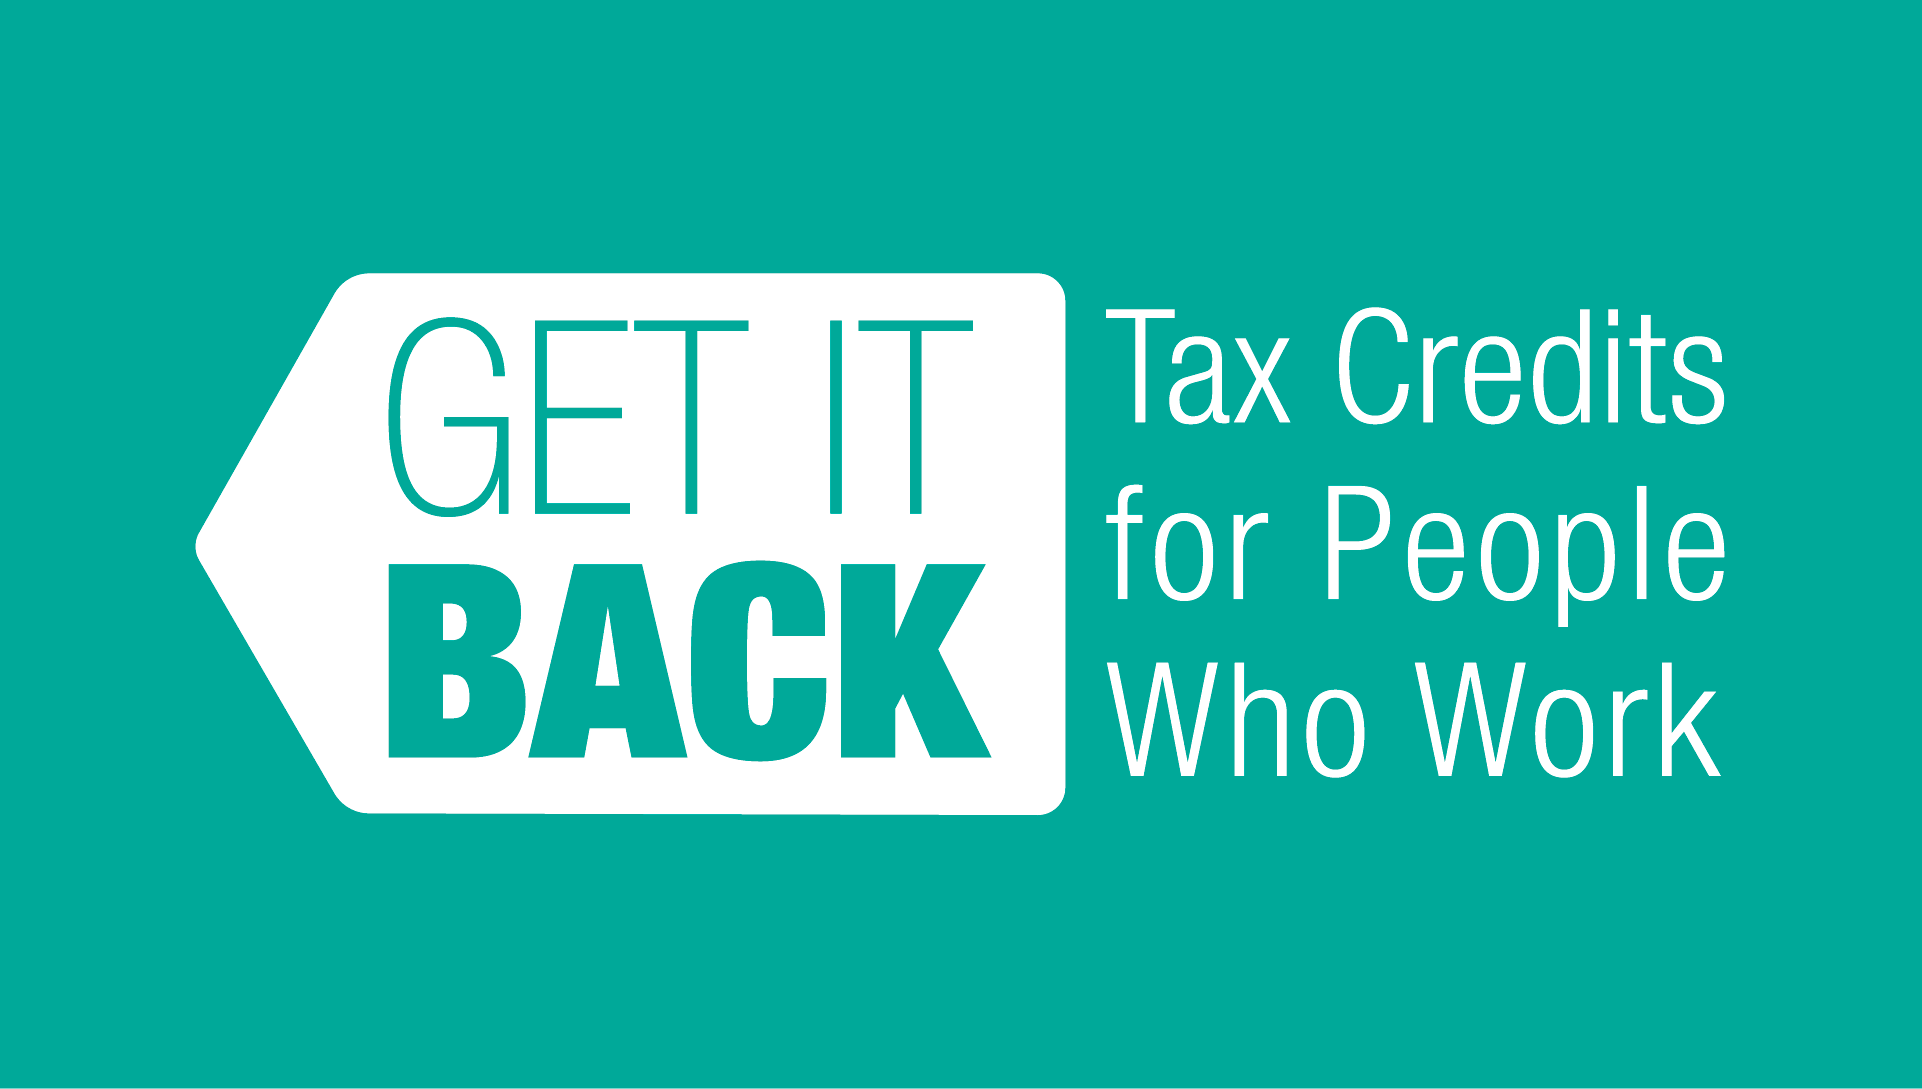 How Much Are The Eitc And Ctc Worth In Get It Back